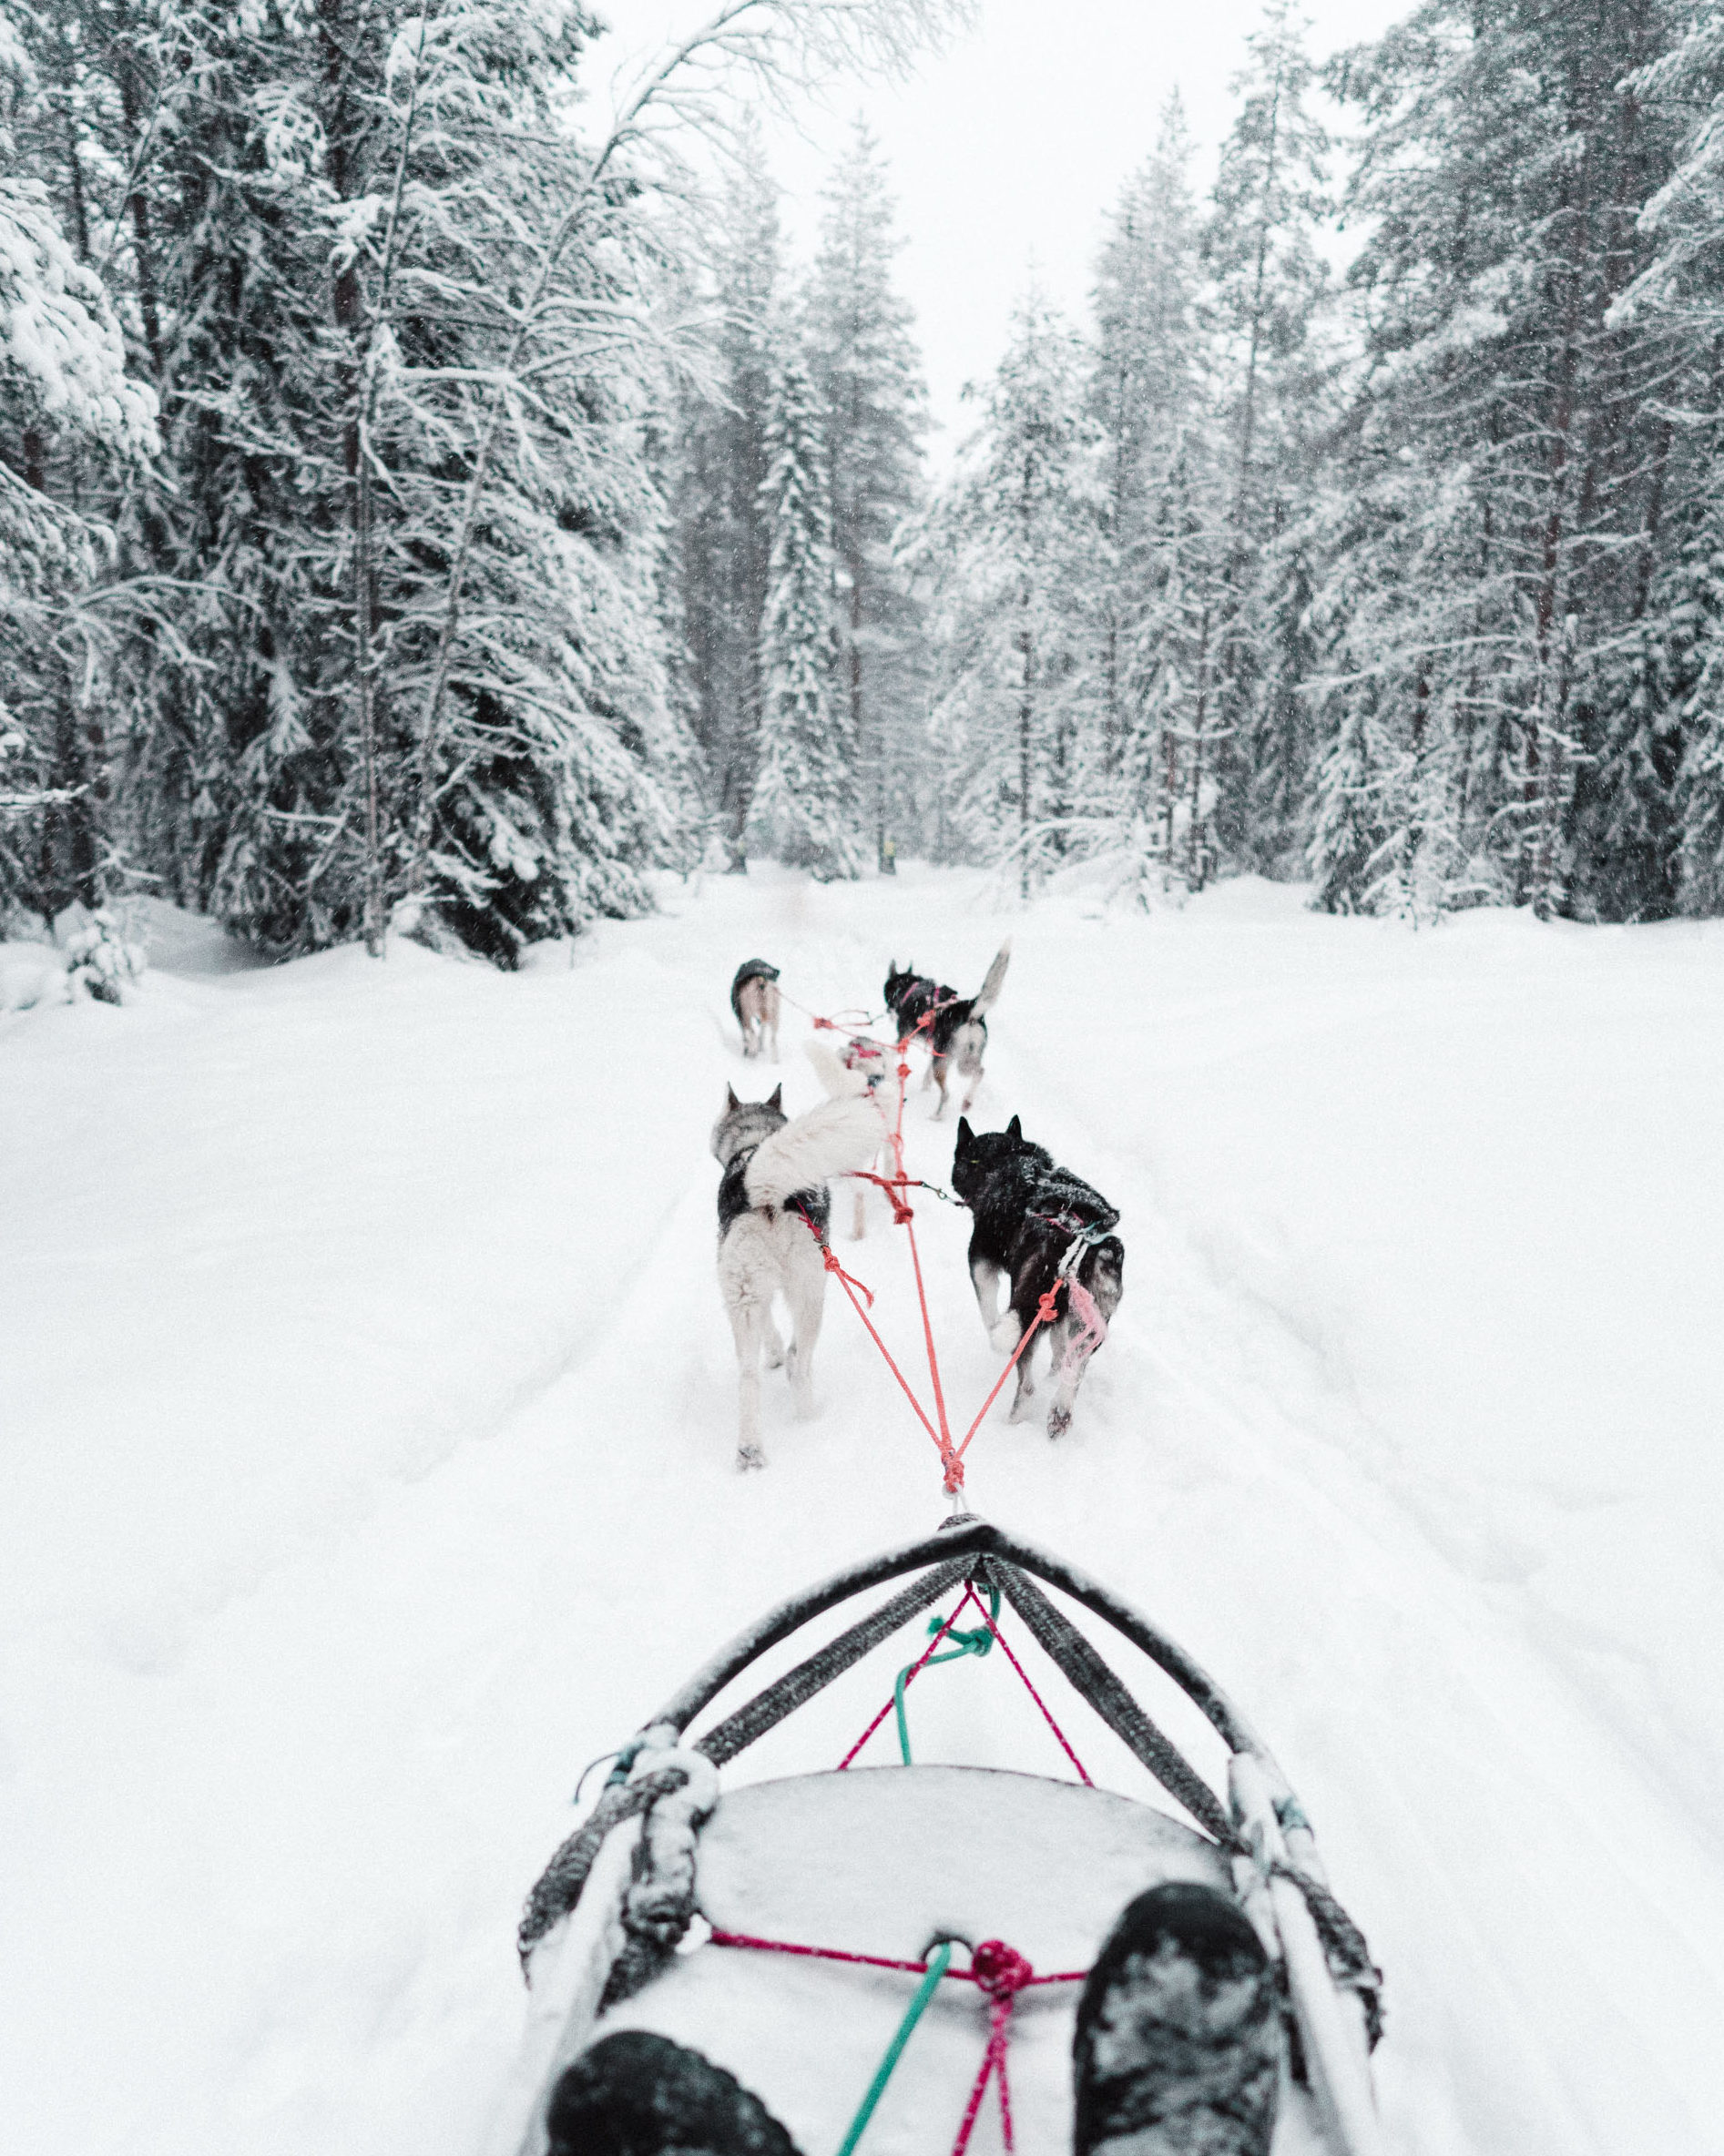 Husky safari dog sledding in Lapland Finland